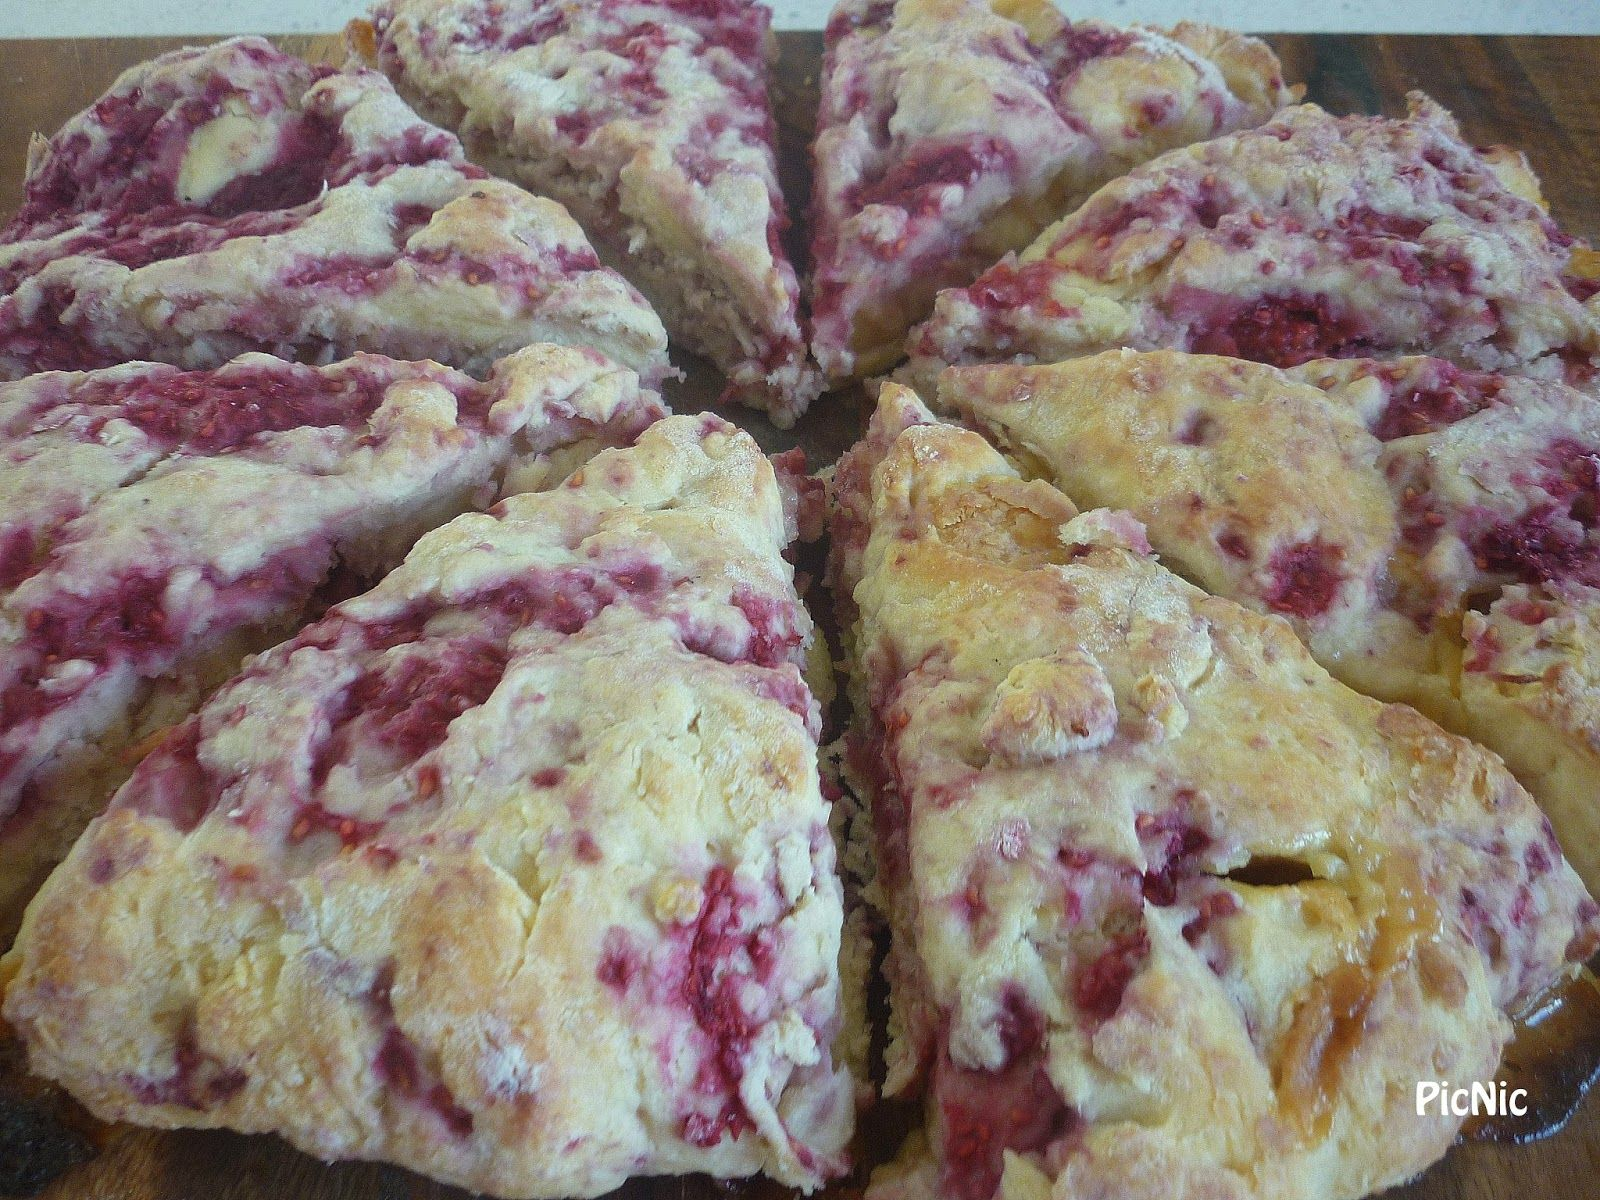 Picnic Raspberry White Chocolate Buttermilk Scones Sweet Recipes White Chocolate Raspberry Buttermilk Scone Recipe